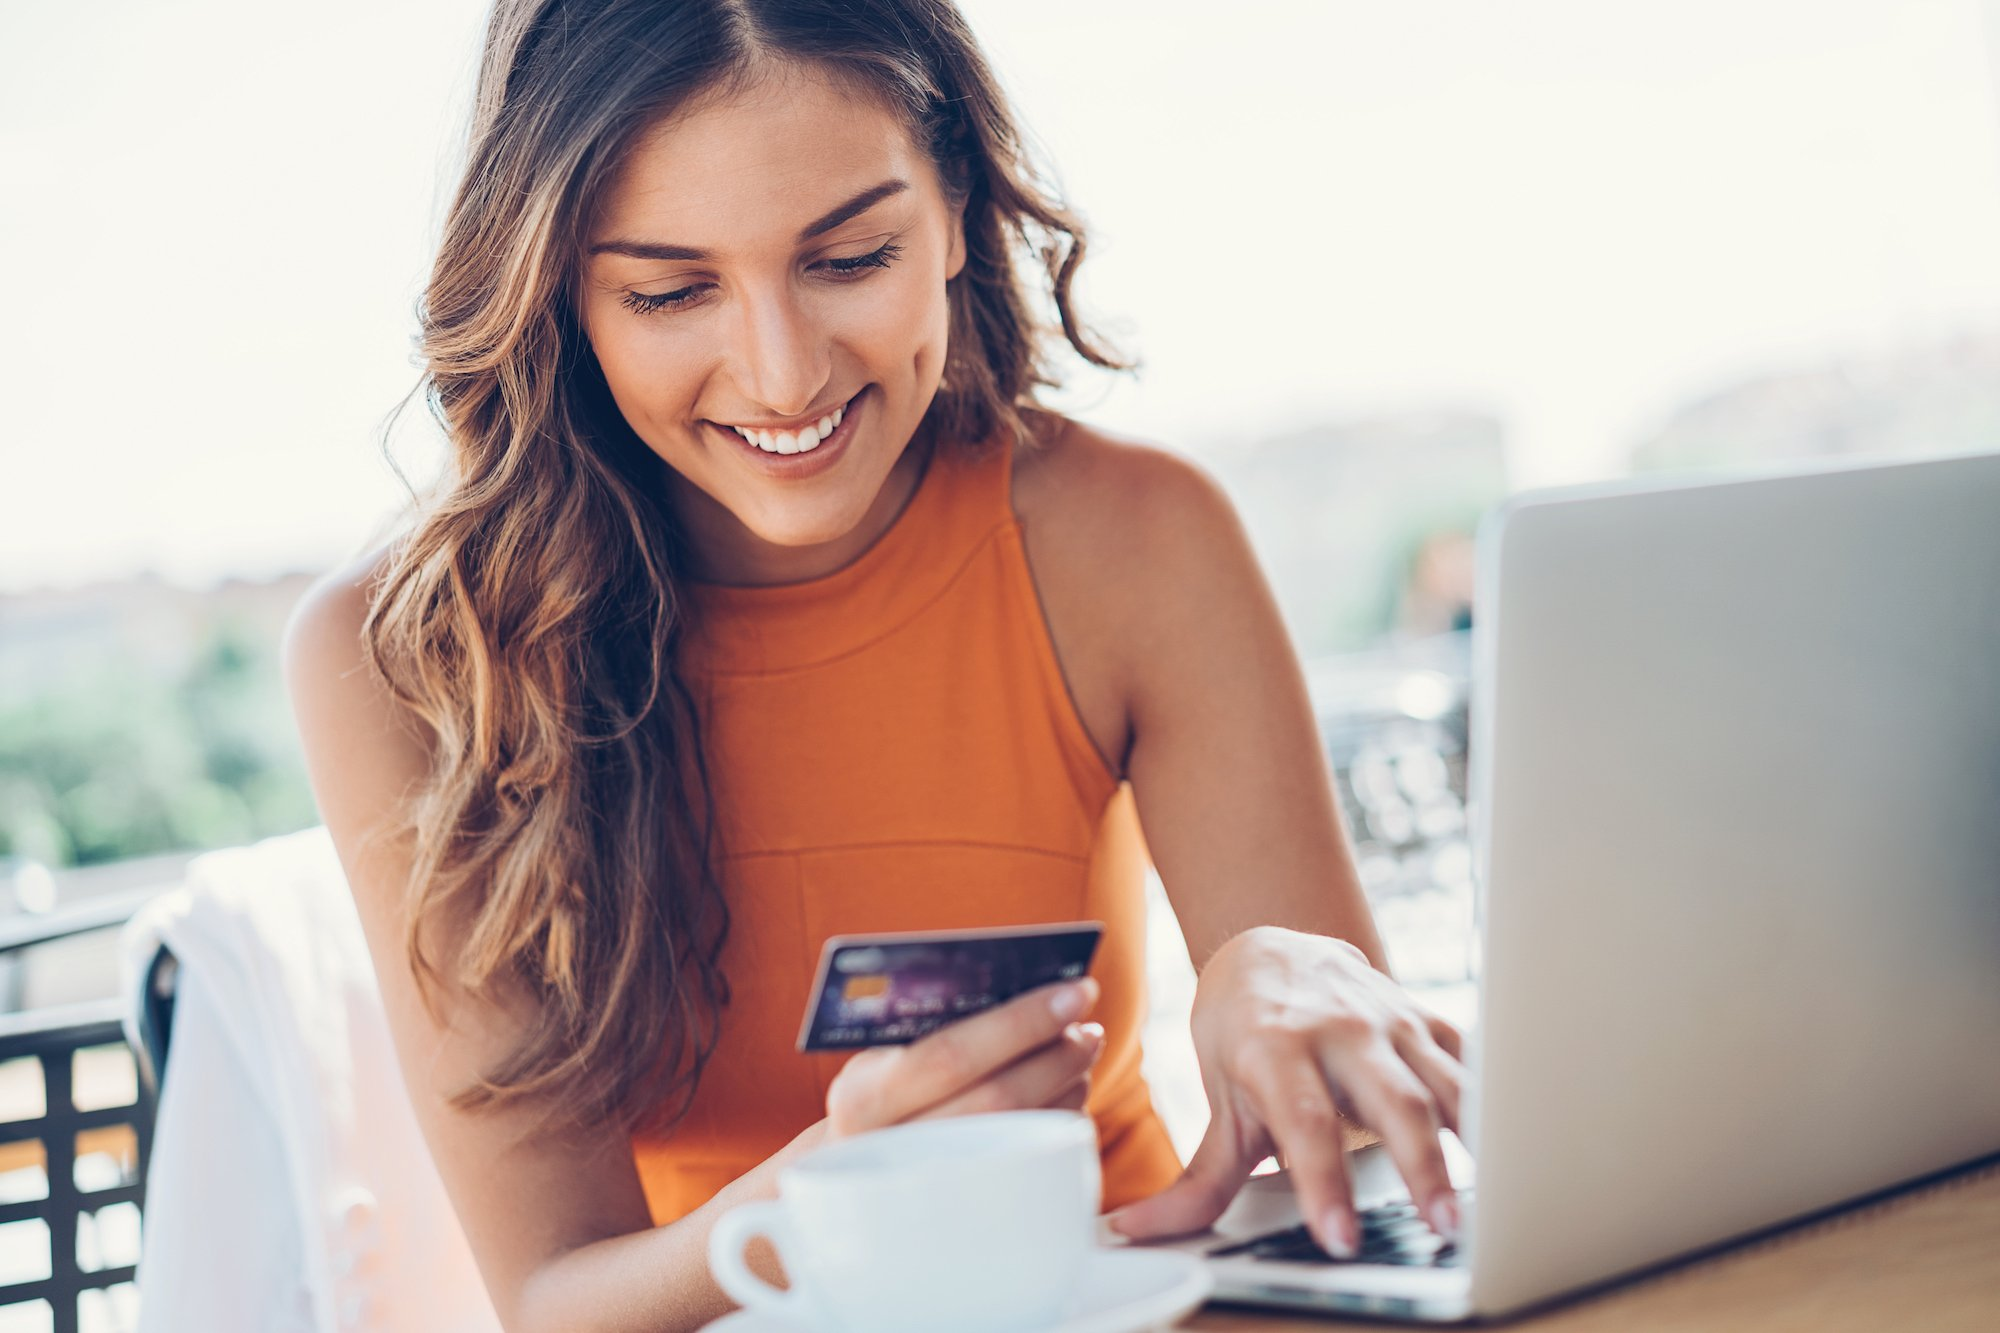 Image of woman with credit card